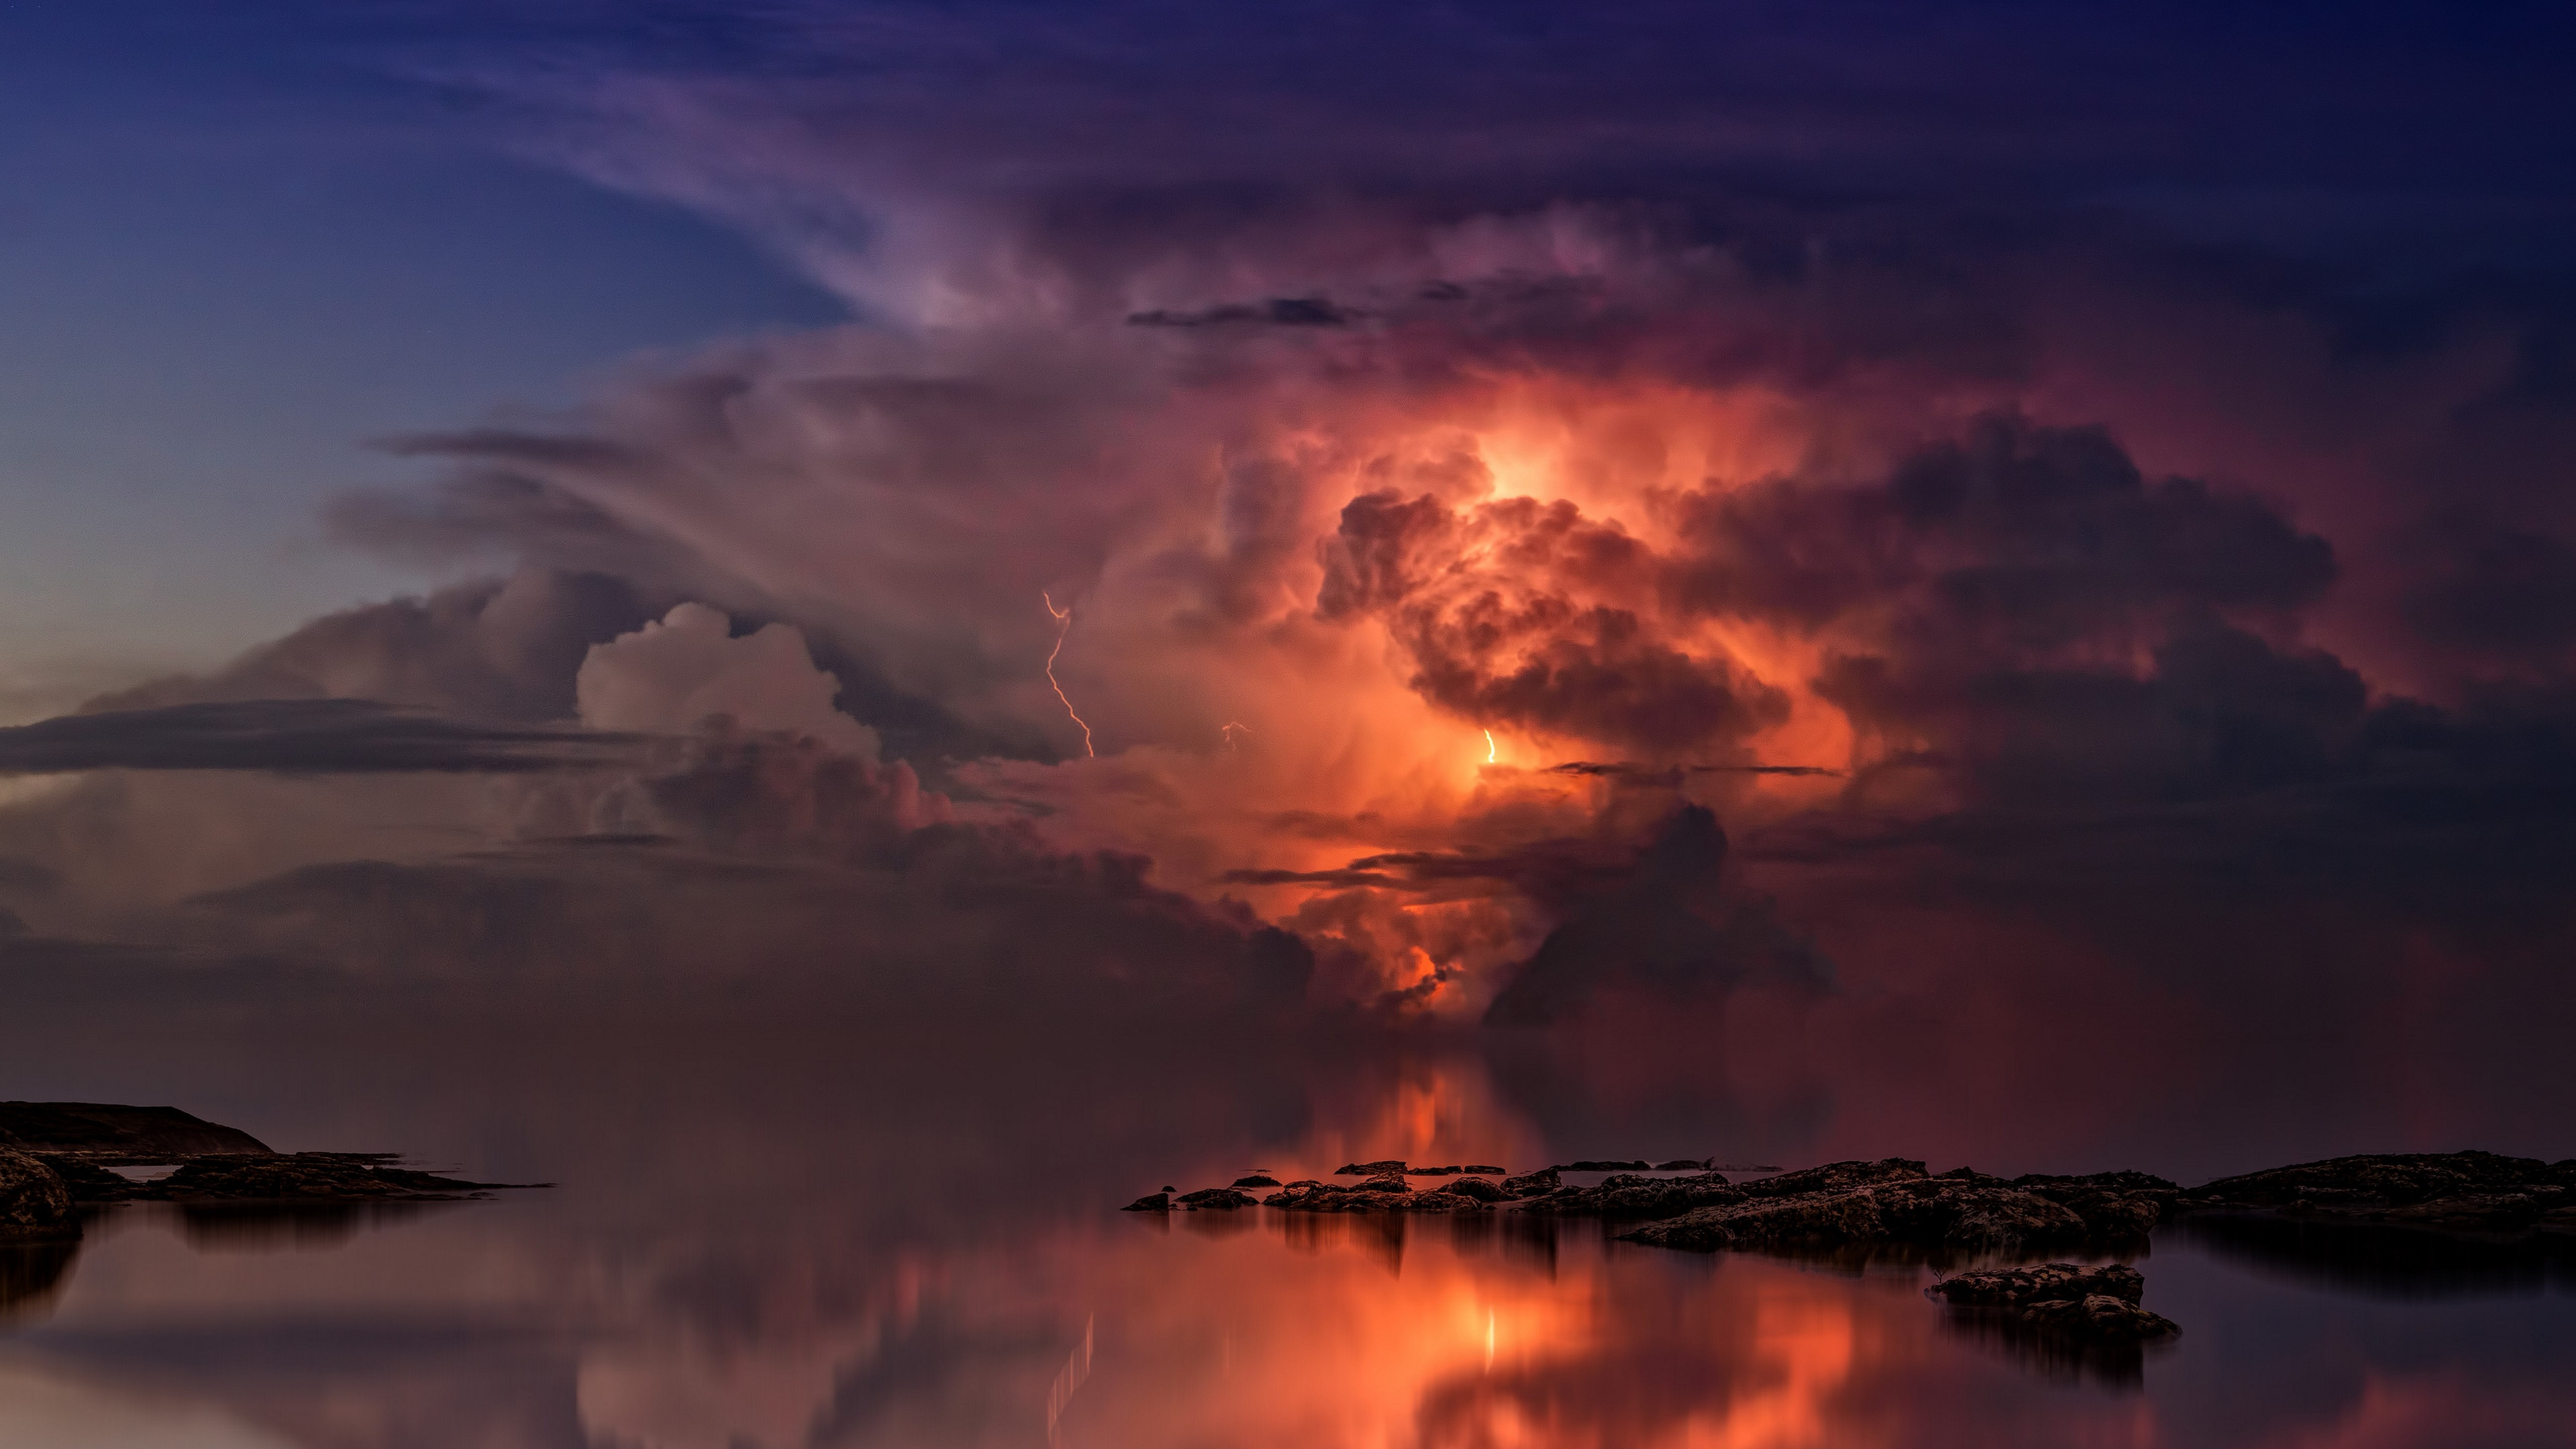 Lightning and thunderstorm in the sky wallpaper 3840x2160